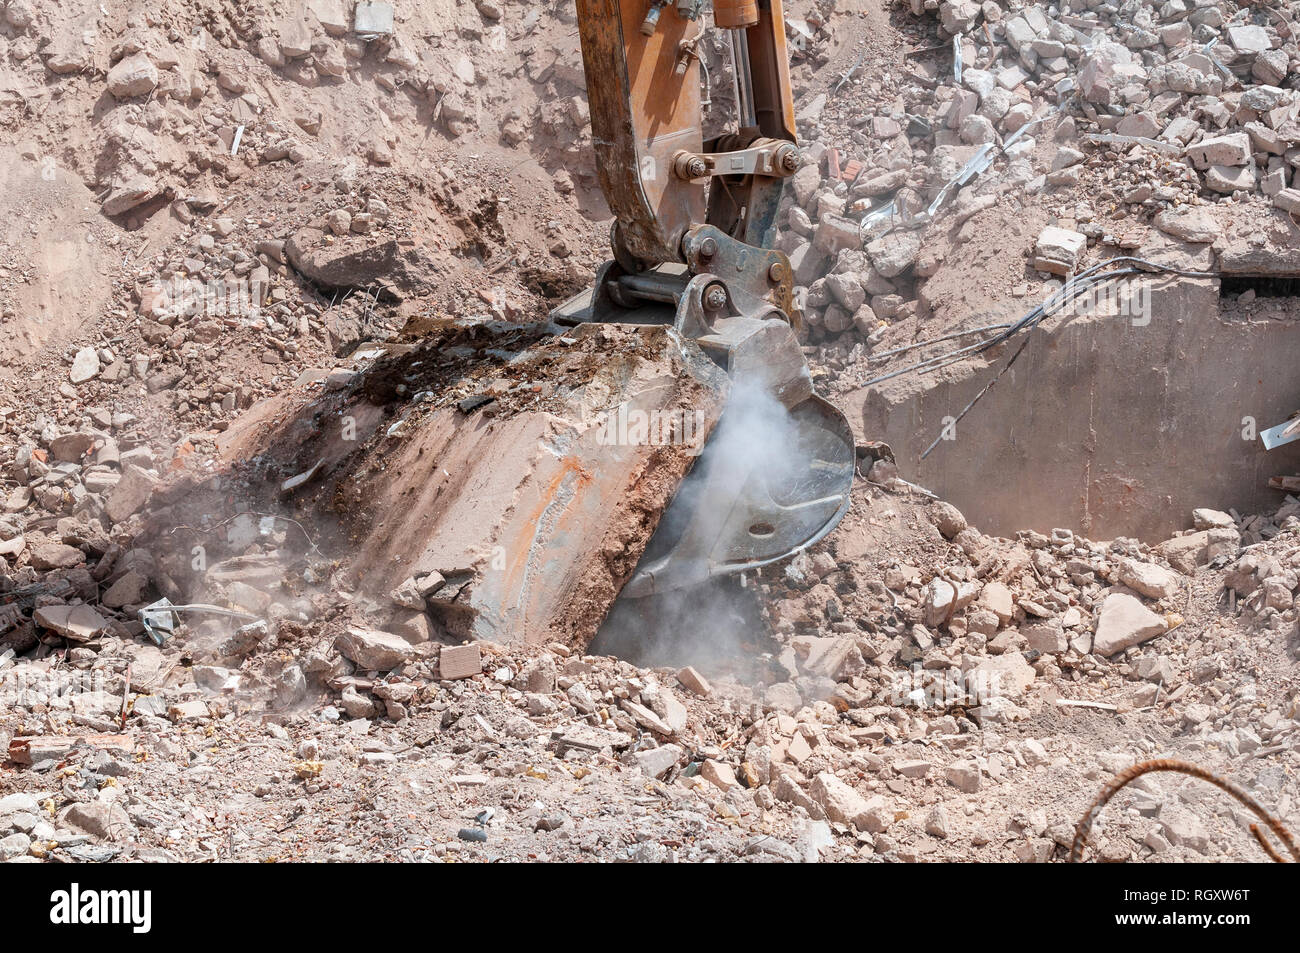 On a demolition site the bucket of an excavator pulls a